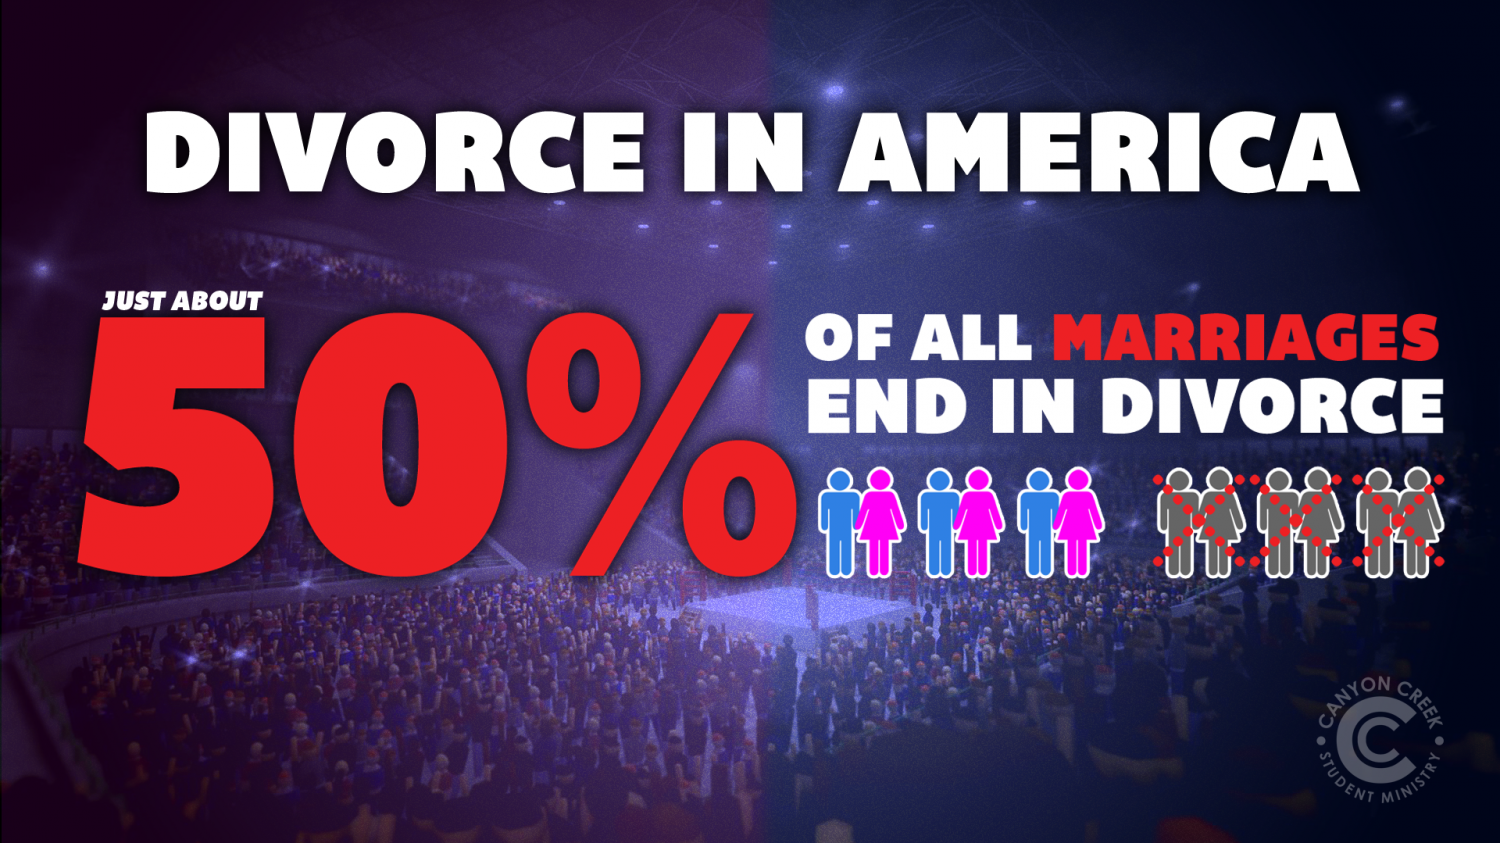 divorce in america Infographic